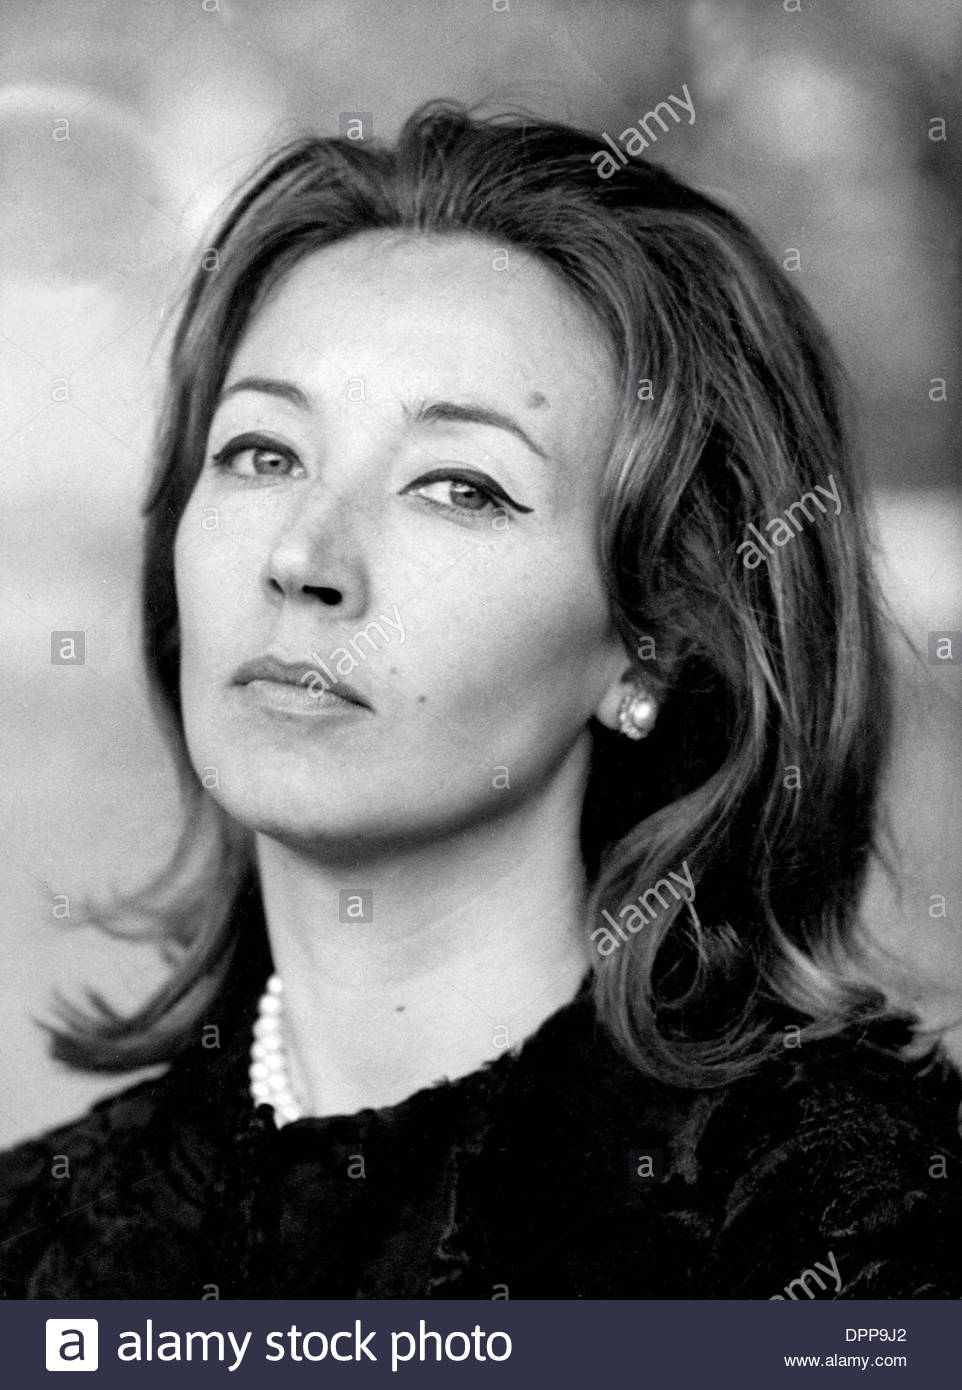 Oriana Fallaci High Resolution Stock Photography and Images - Alamy